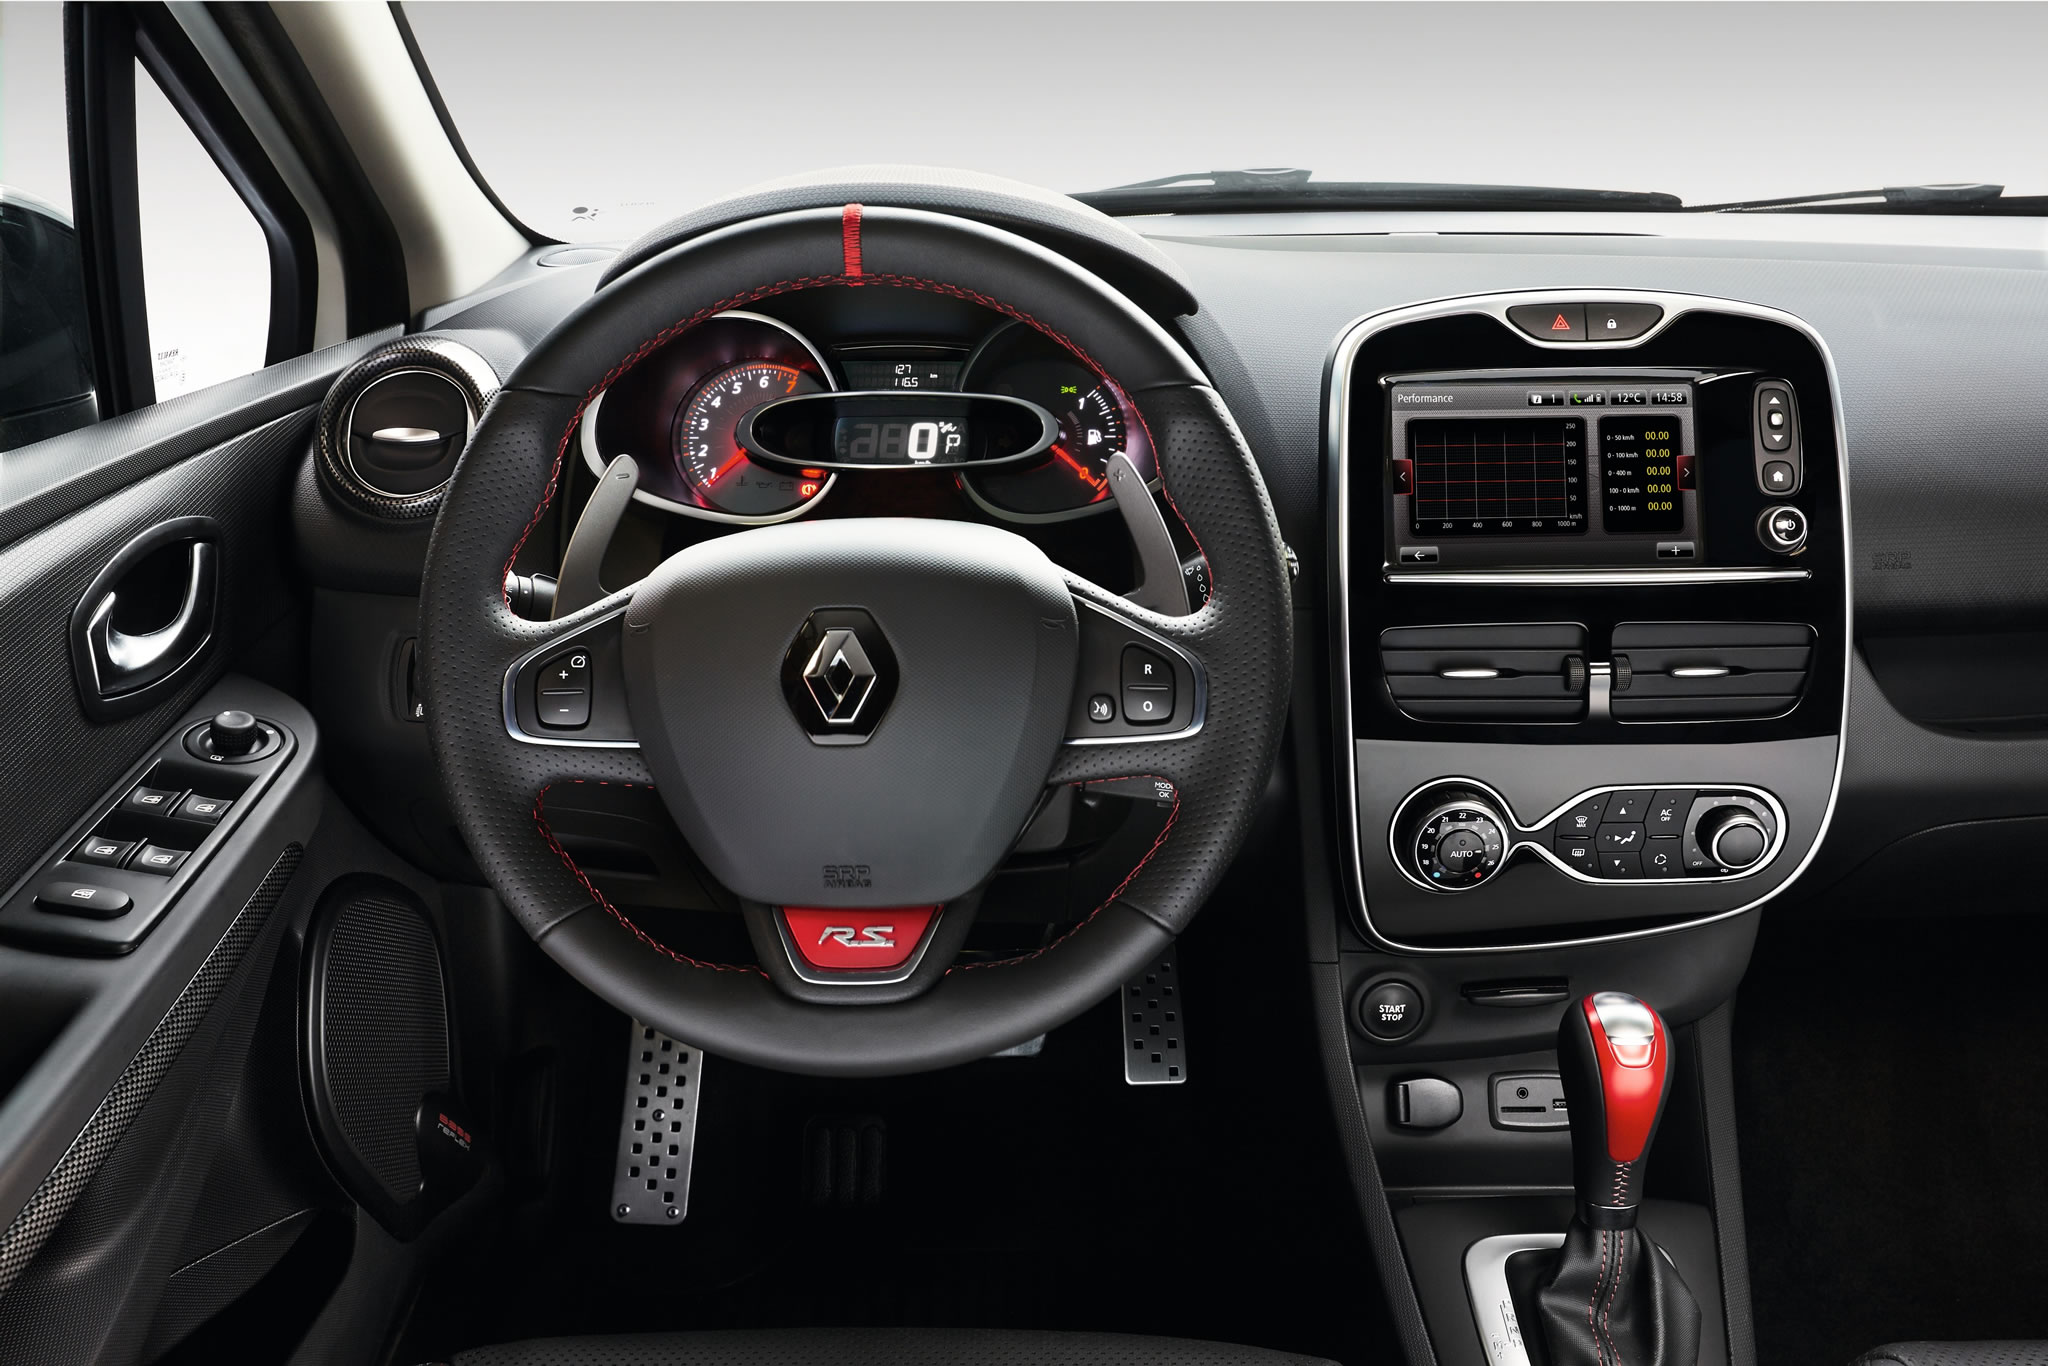 2015 renault clio r s 220 edc trophy interior photo Interieur clio 4